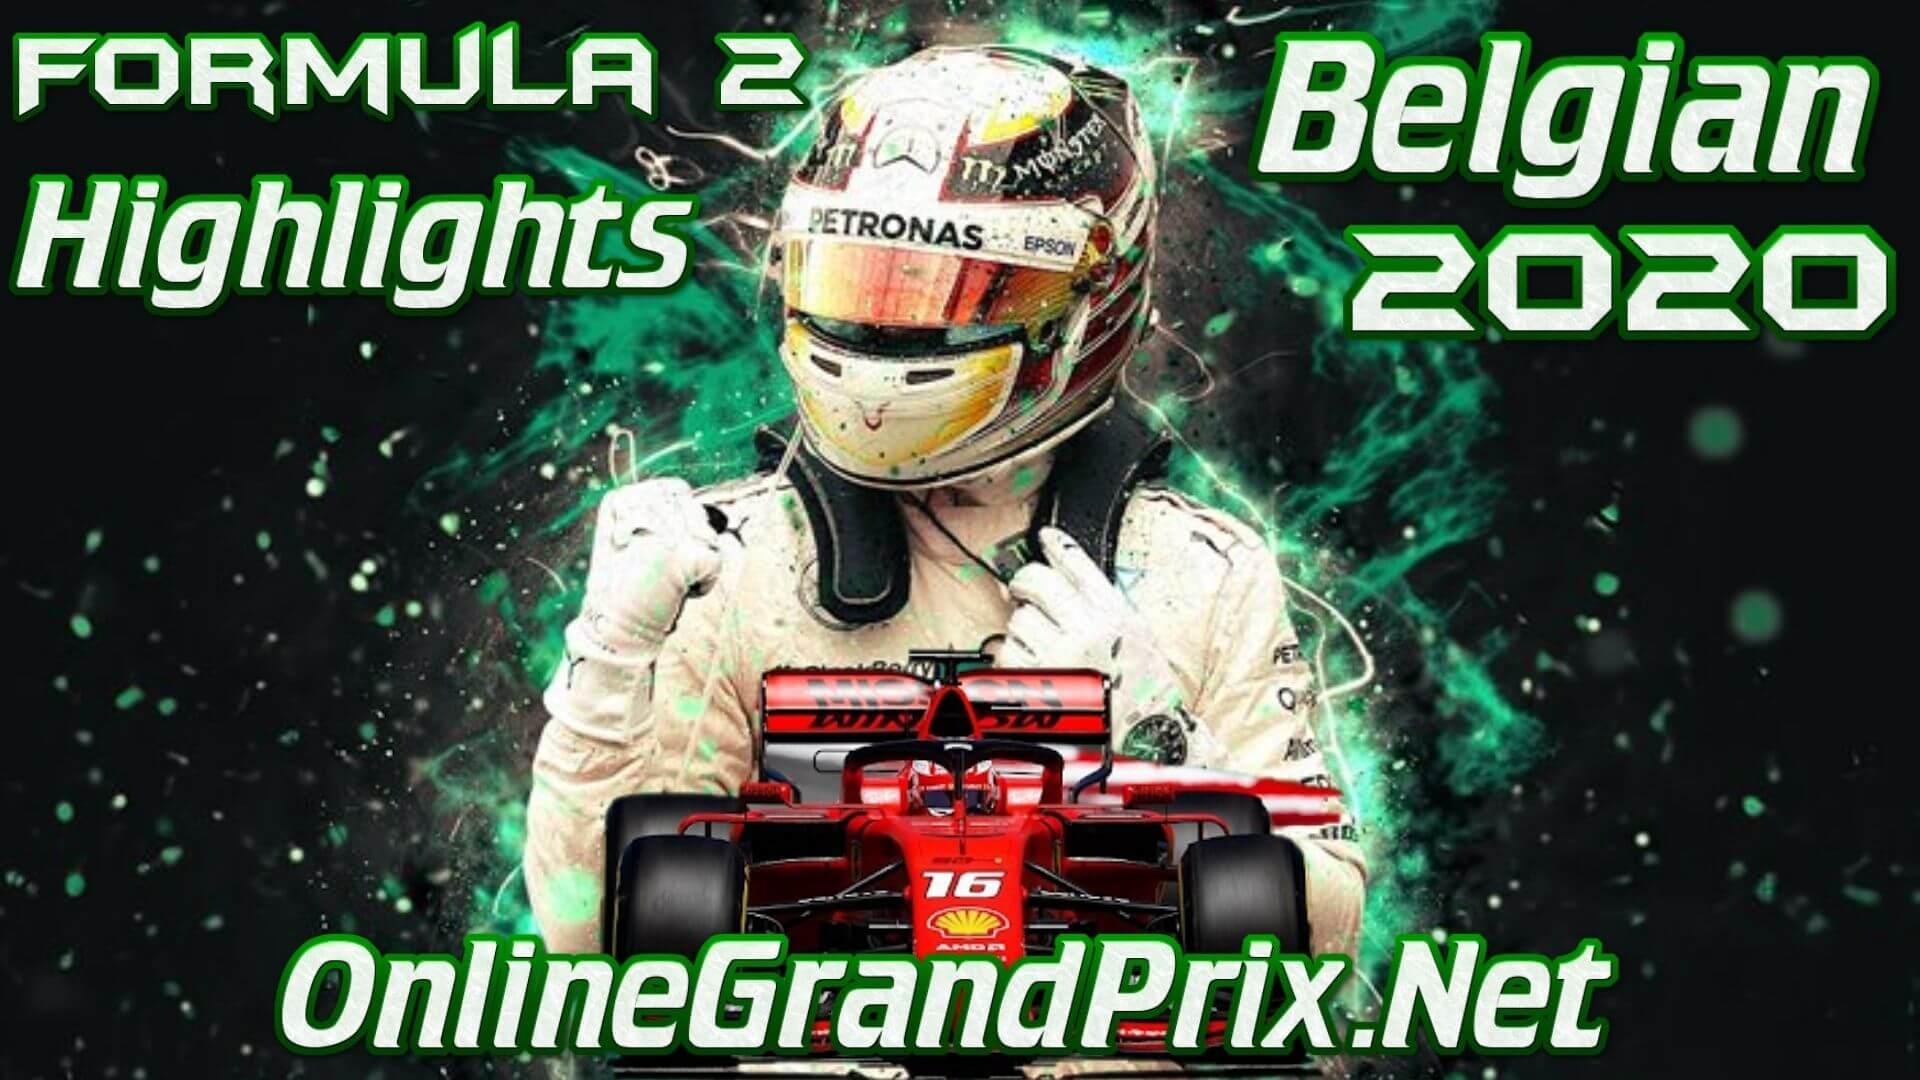 Belgian GP F2 Highlights 2020